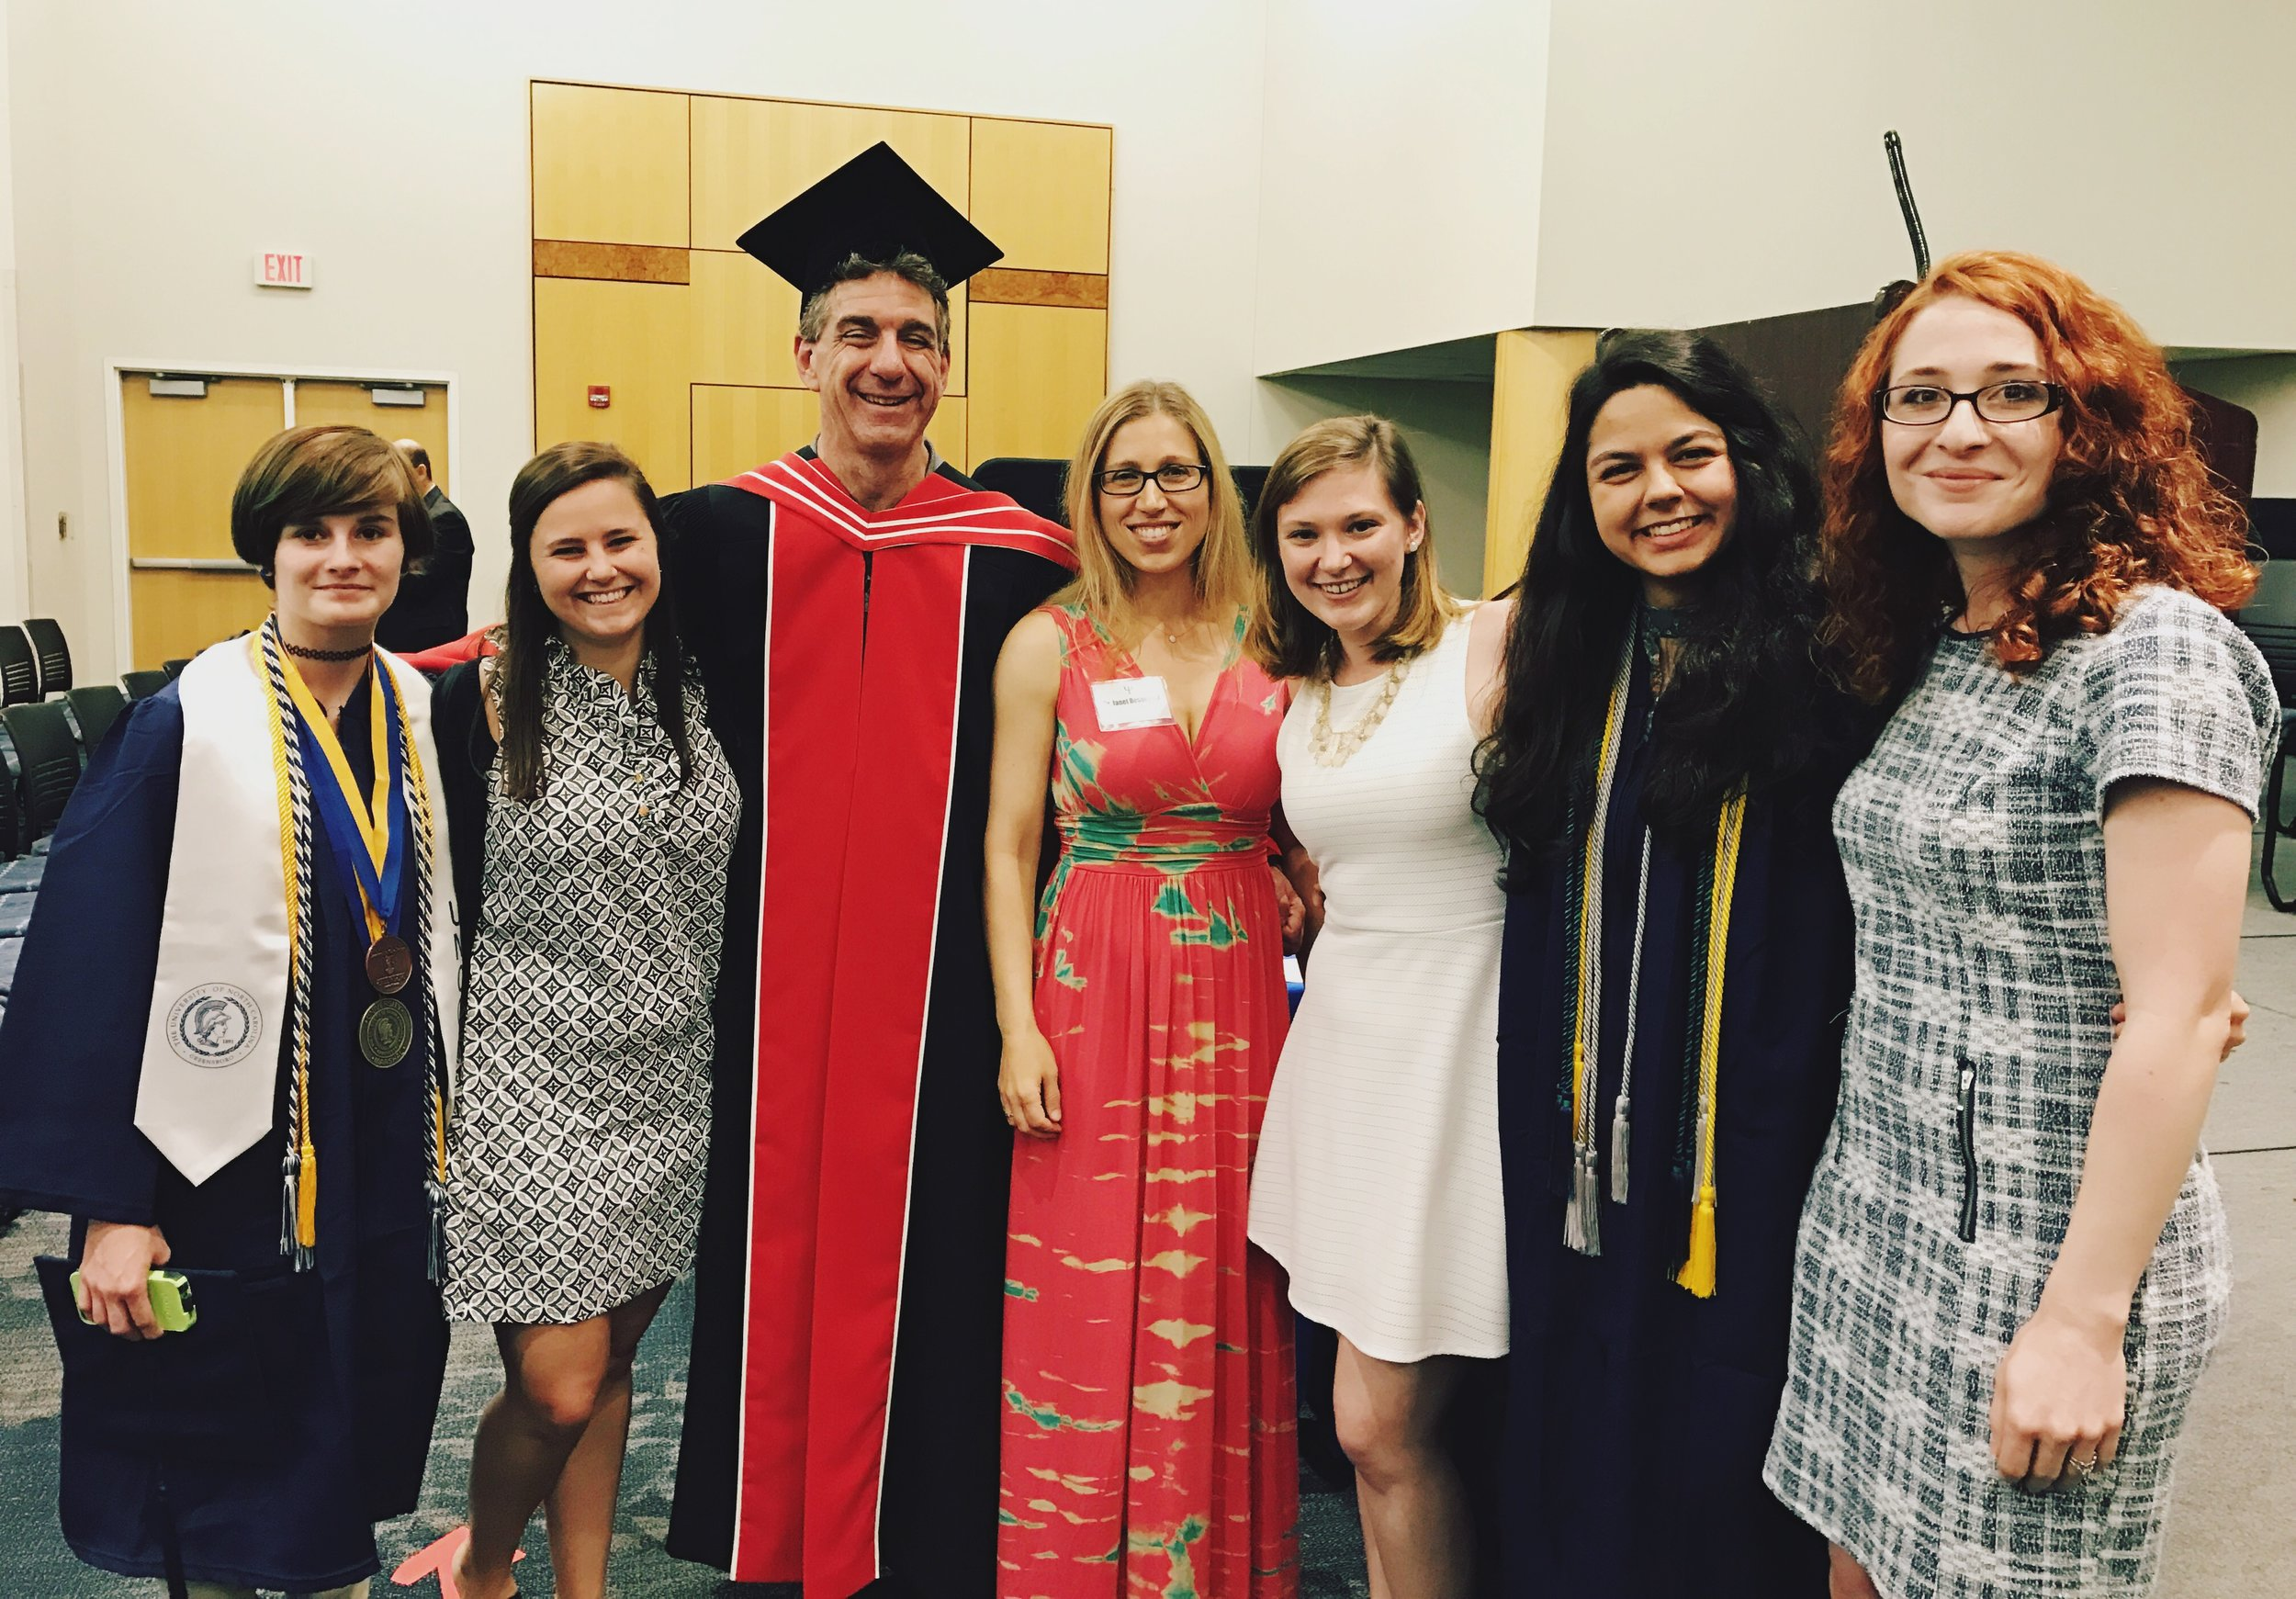 From left: Kris McClamrock (BA), Jessica Caporaso (MA), Dr. Stuart Marcovitch (Head of Psychology and DUCK Lab Co-Director), Dr. Janet Boseovski (DUCK Lab Co-Director), Kimmy Marble (MA), Amber Campos (BA), Delaney Collyer (MA).